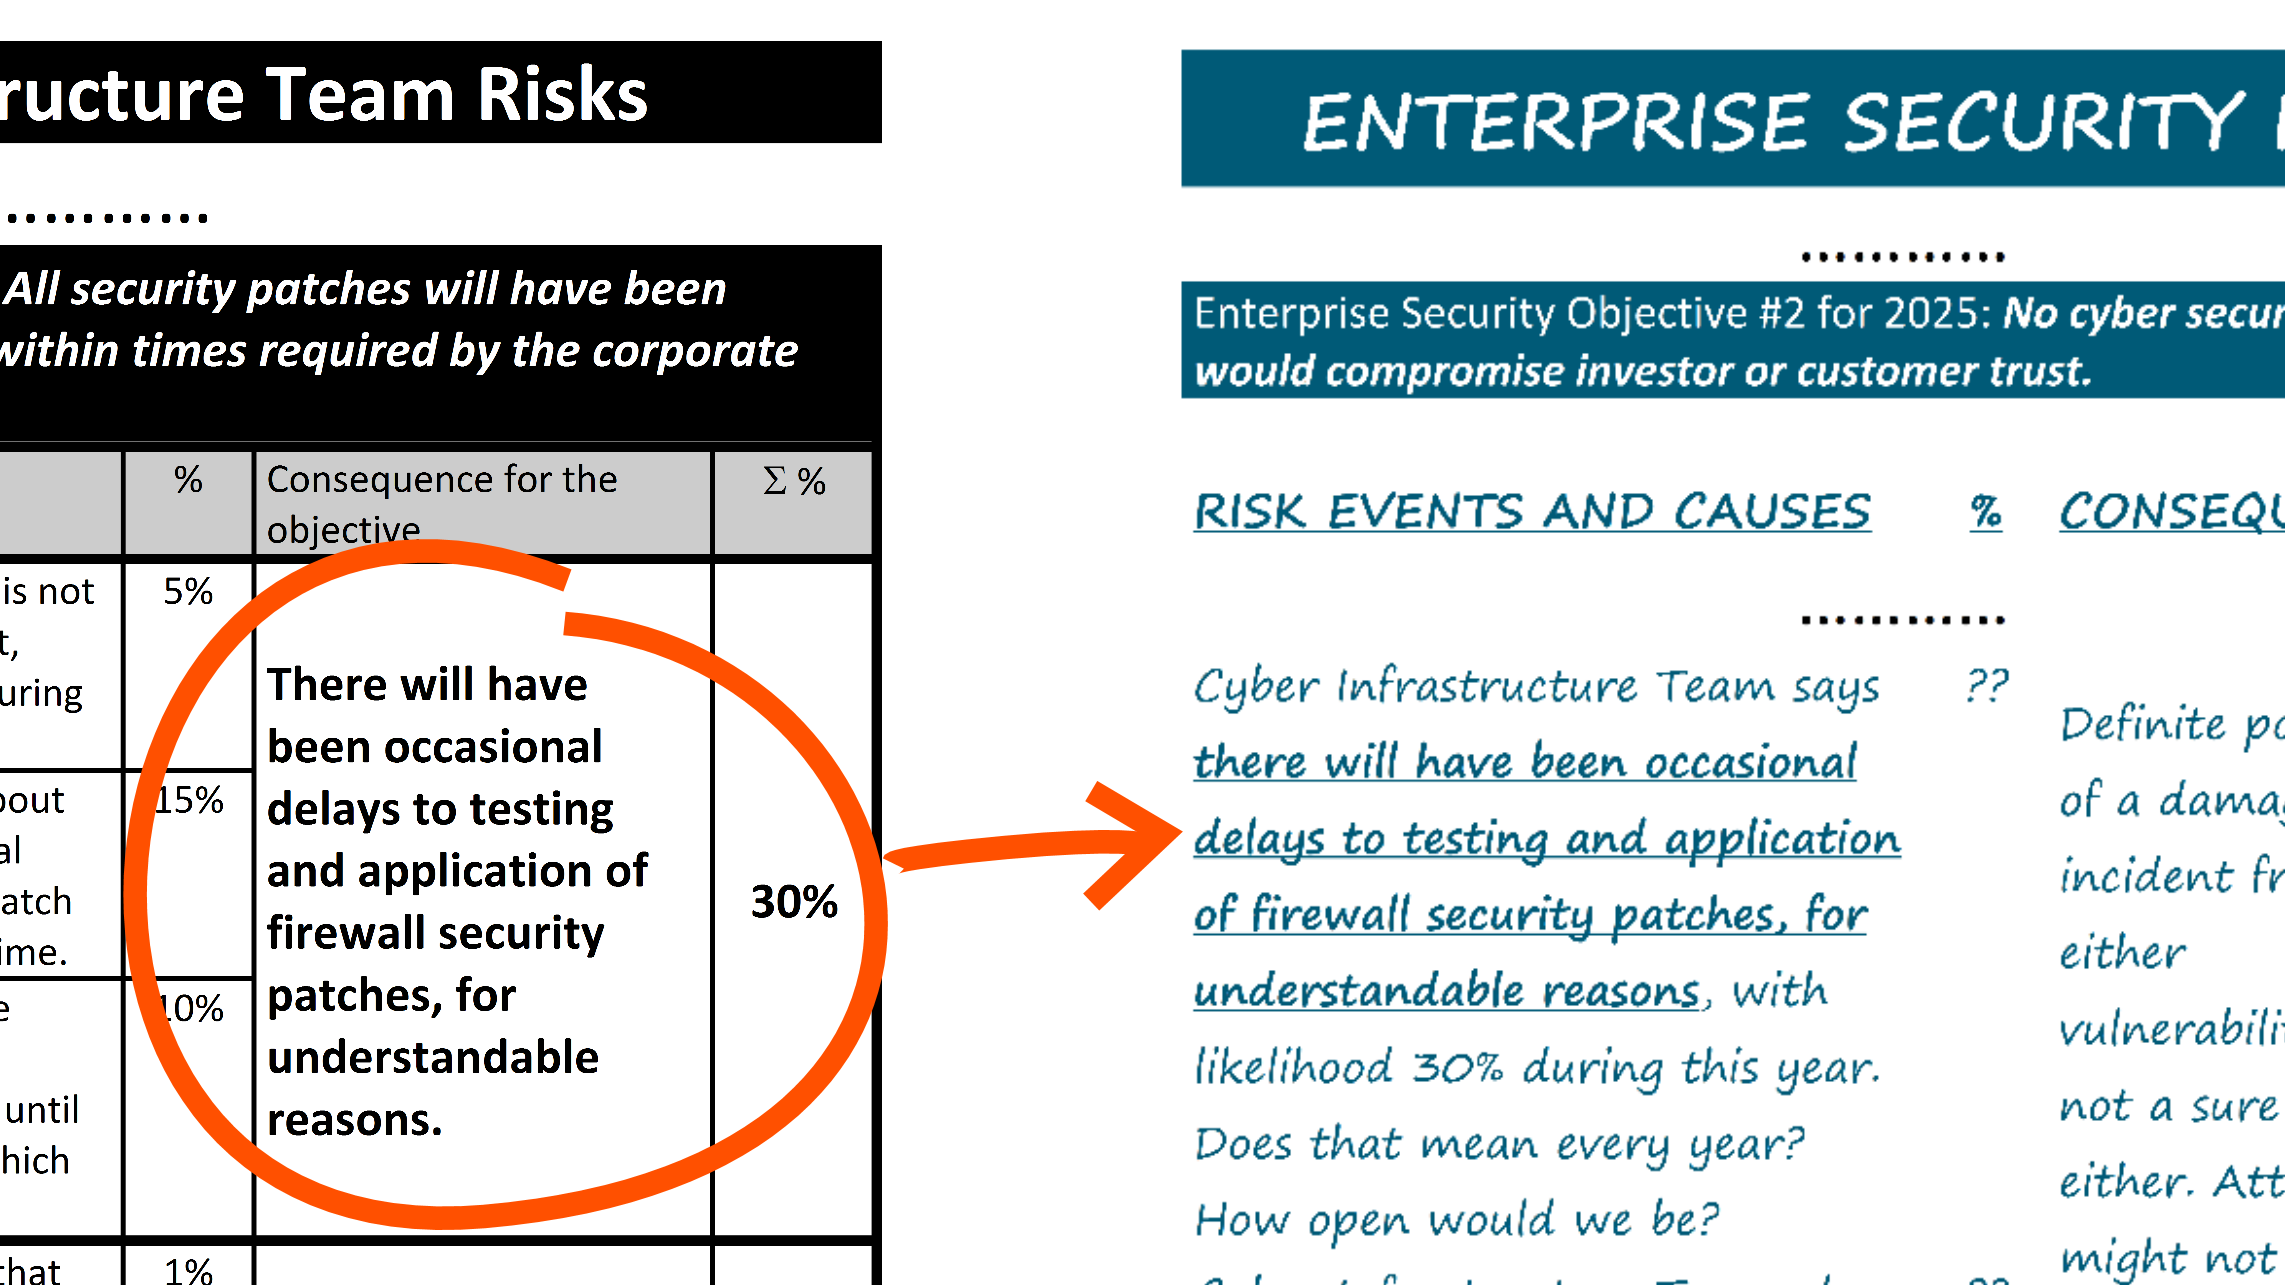 The Cyber Infrastructure Team risk register alongside the draft risk register for enterprise security. Each possible consequential deviation in the Cyber Infrastructure Team register is copied as a risk description in the enterprise security risk register. Copying is in pencil as there may be rewording and change at CISO level.